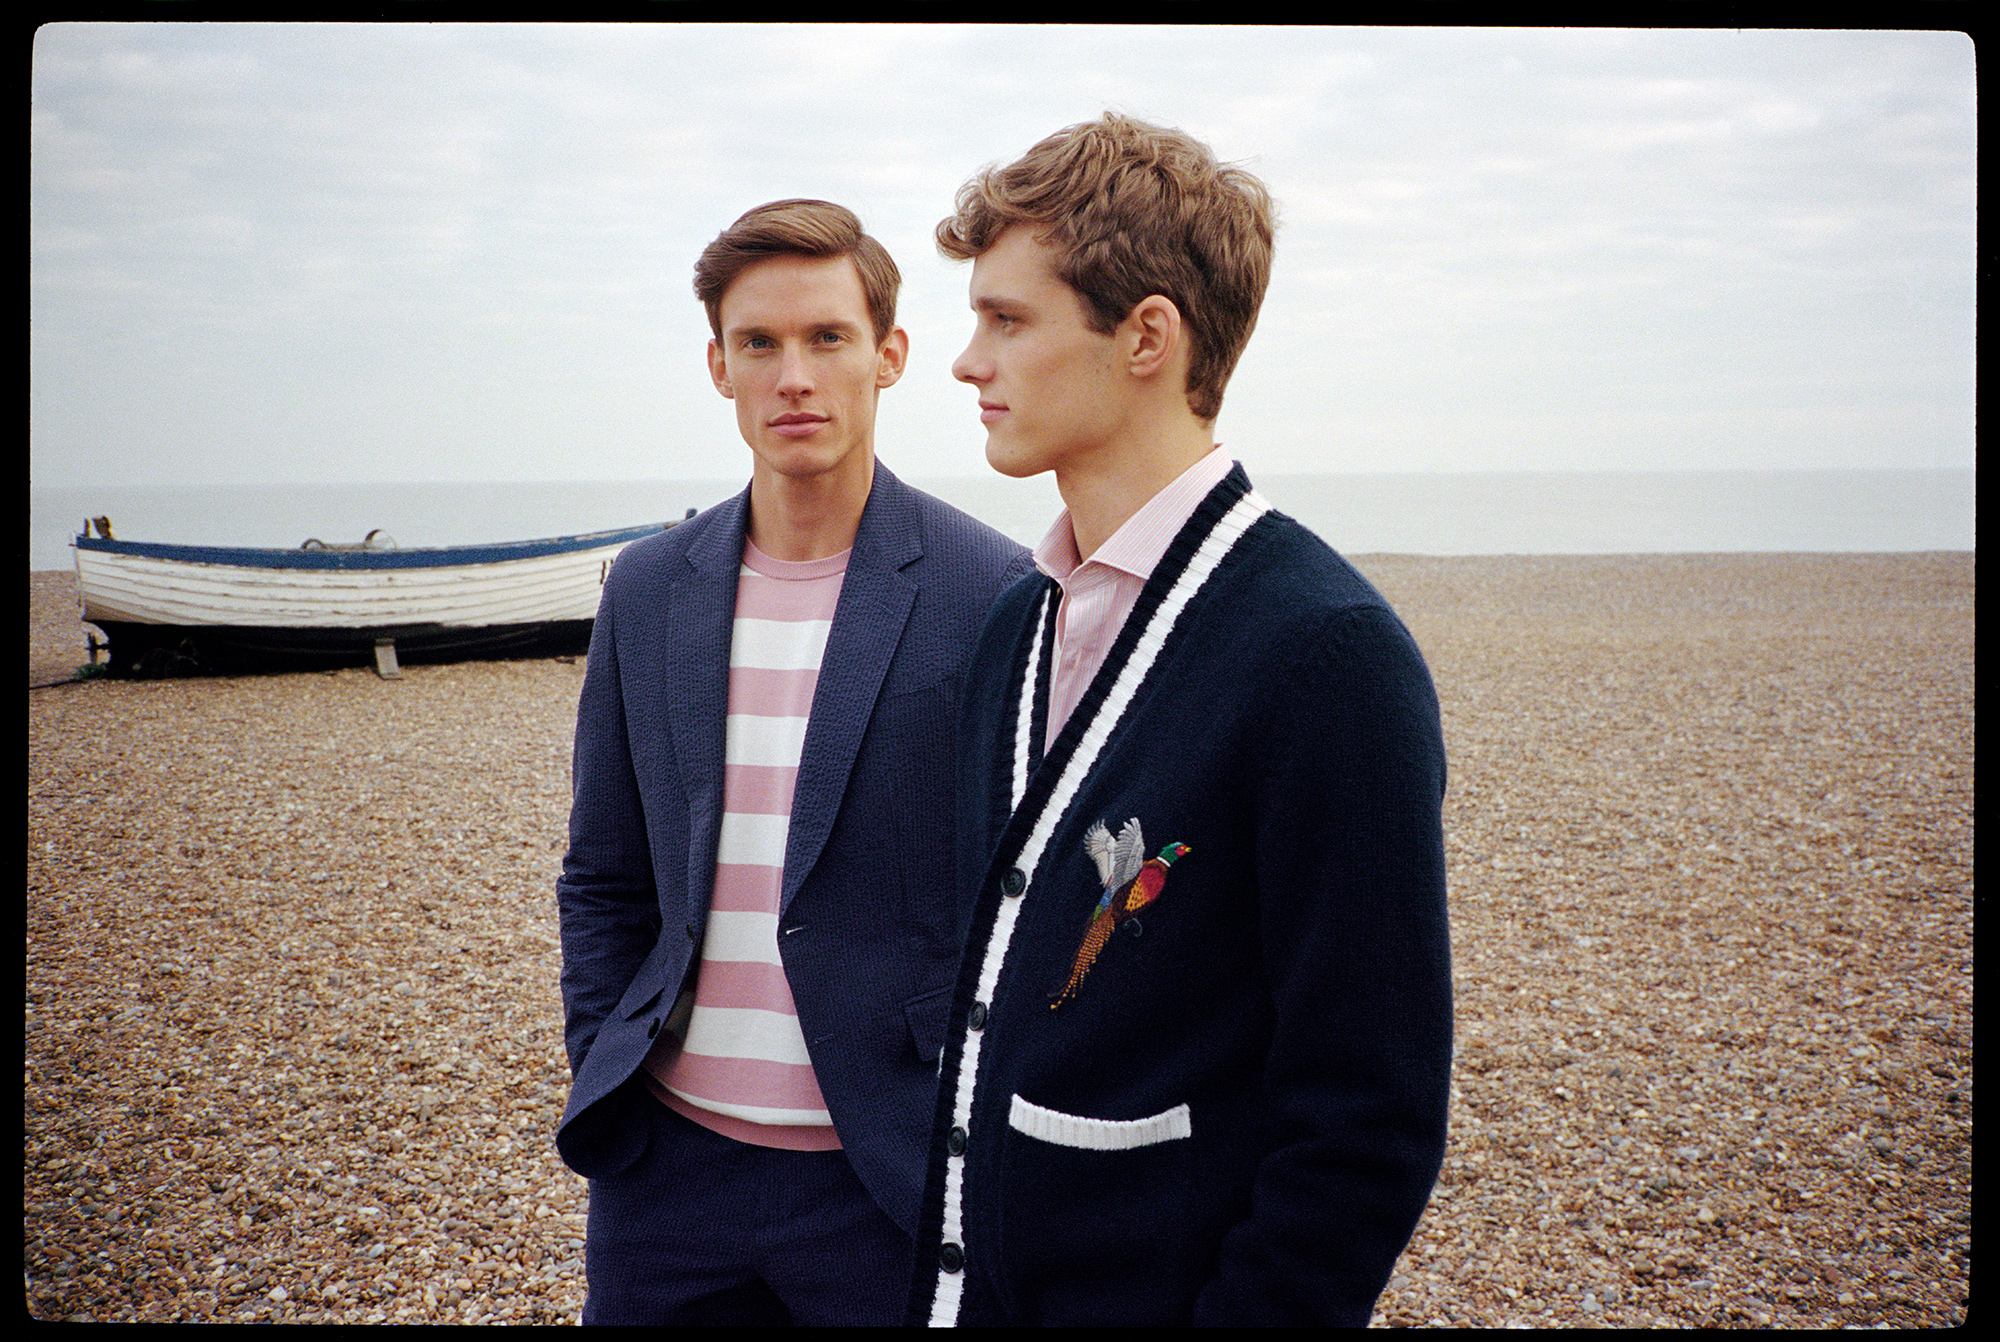 Gieves & Hawkes SS18 campaign